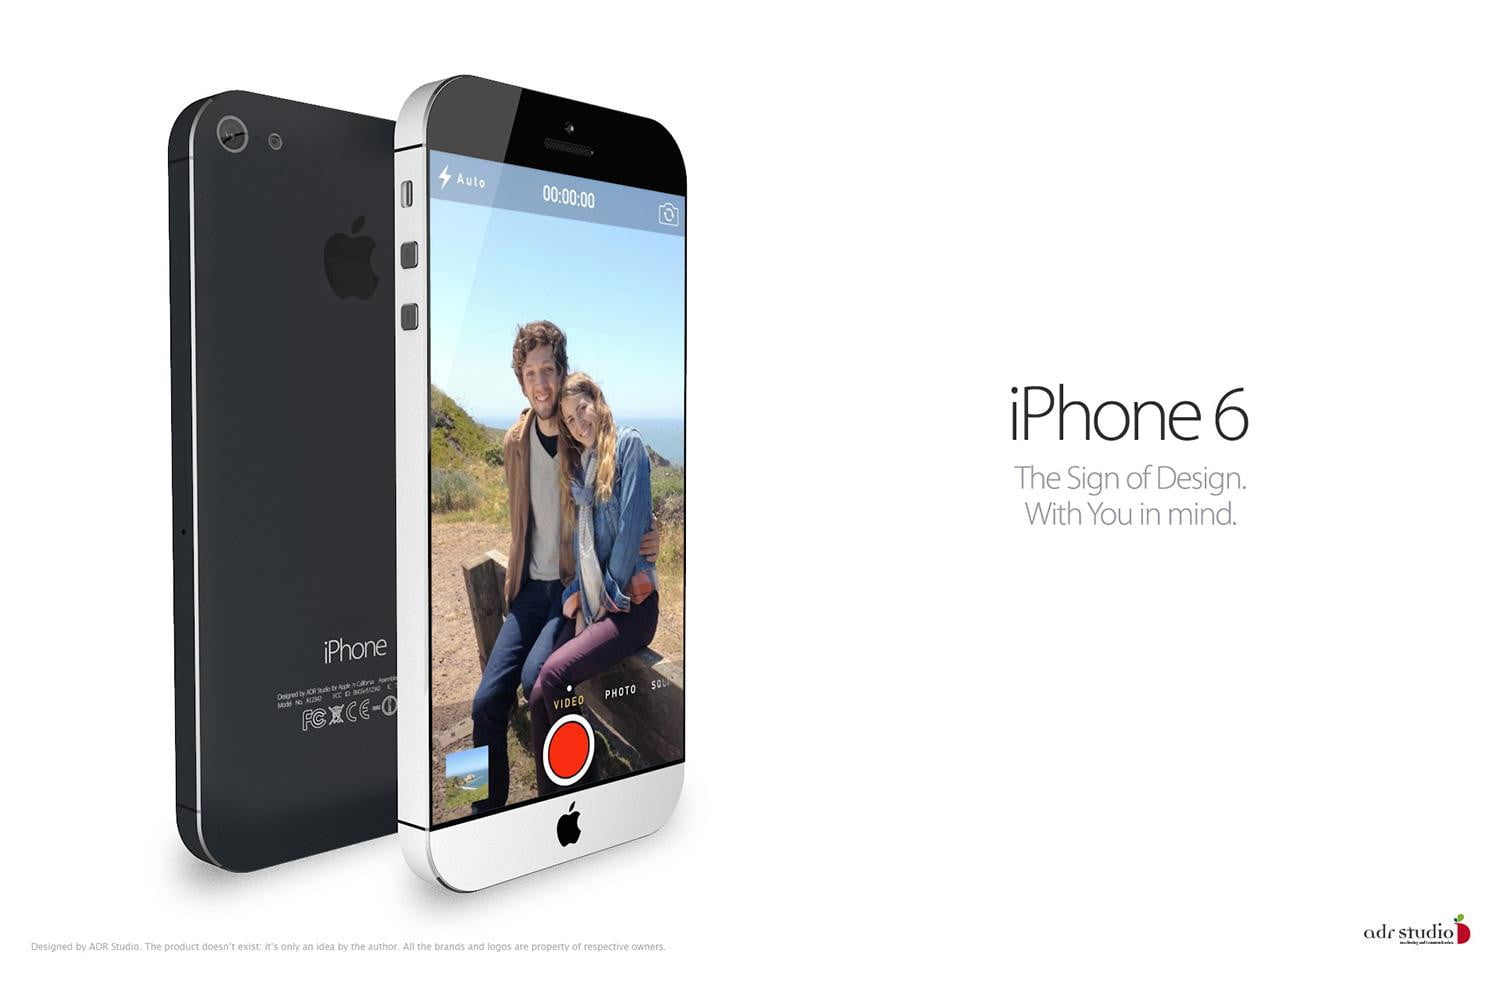 iPhone 6 News: Release Date, Specs, iOS 8, and More ...